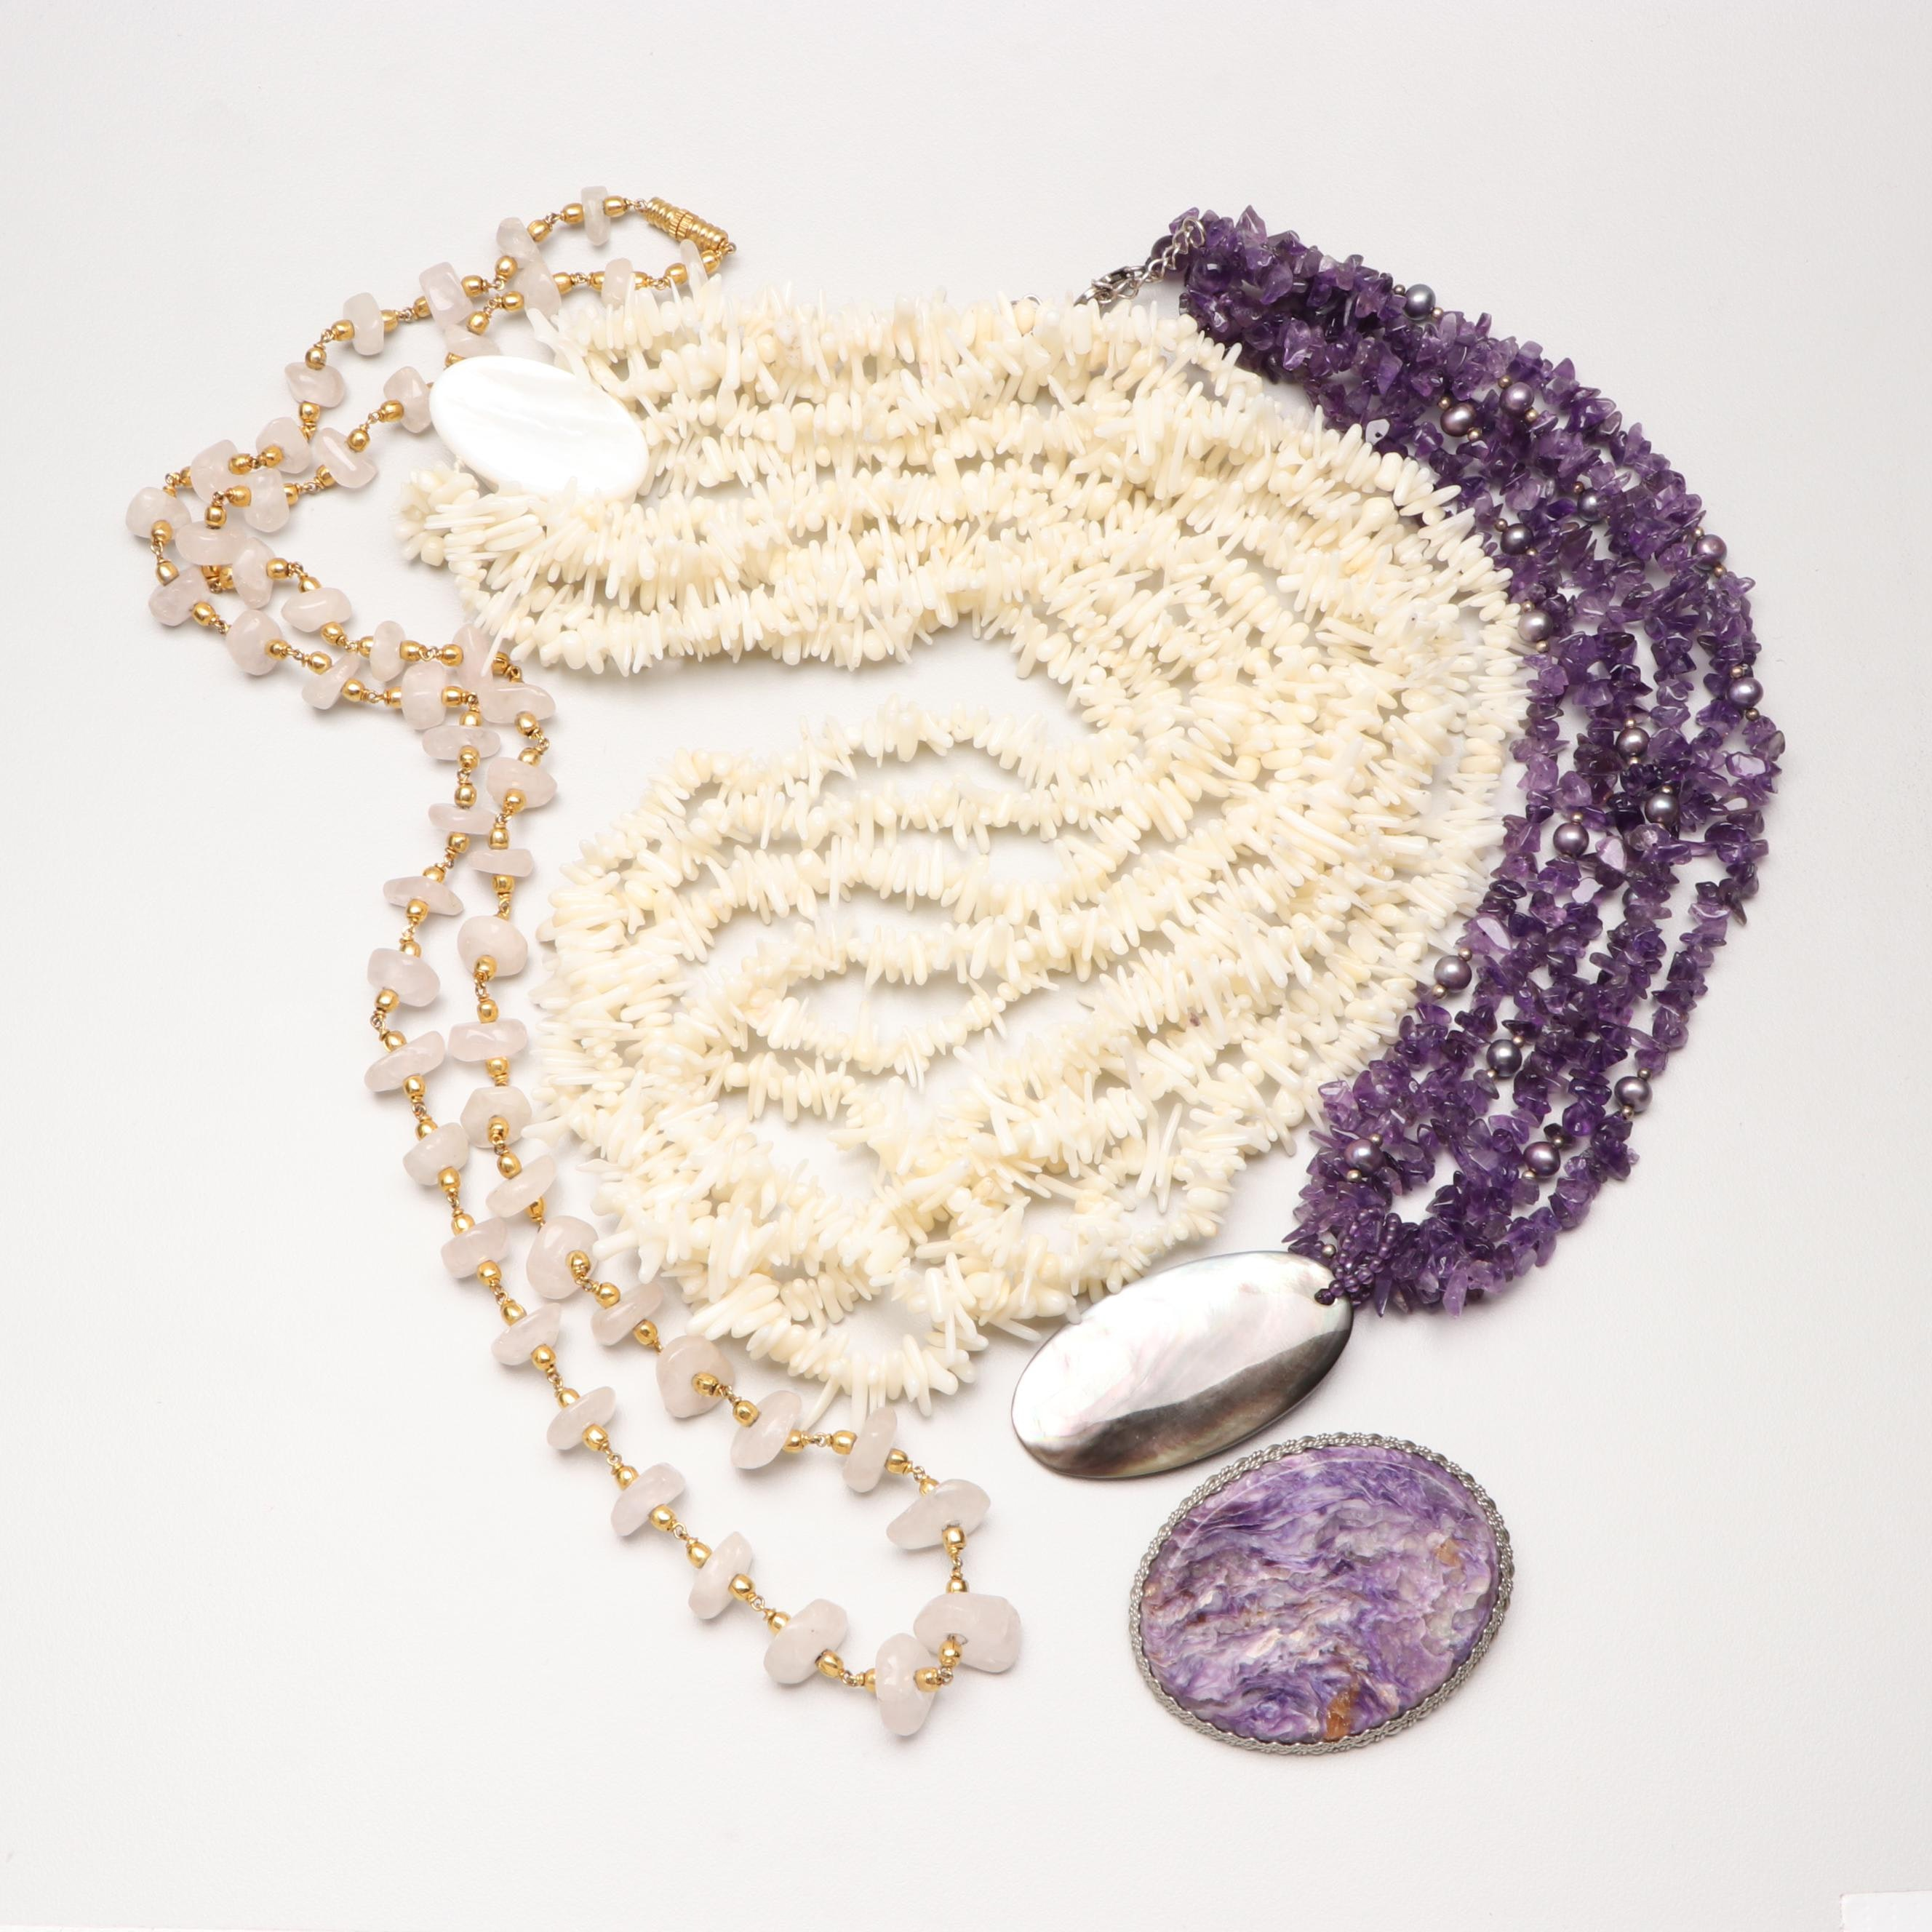 Costume Jewelry Assortment with Charolite, Amethyst and Sterling Silver